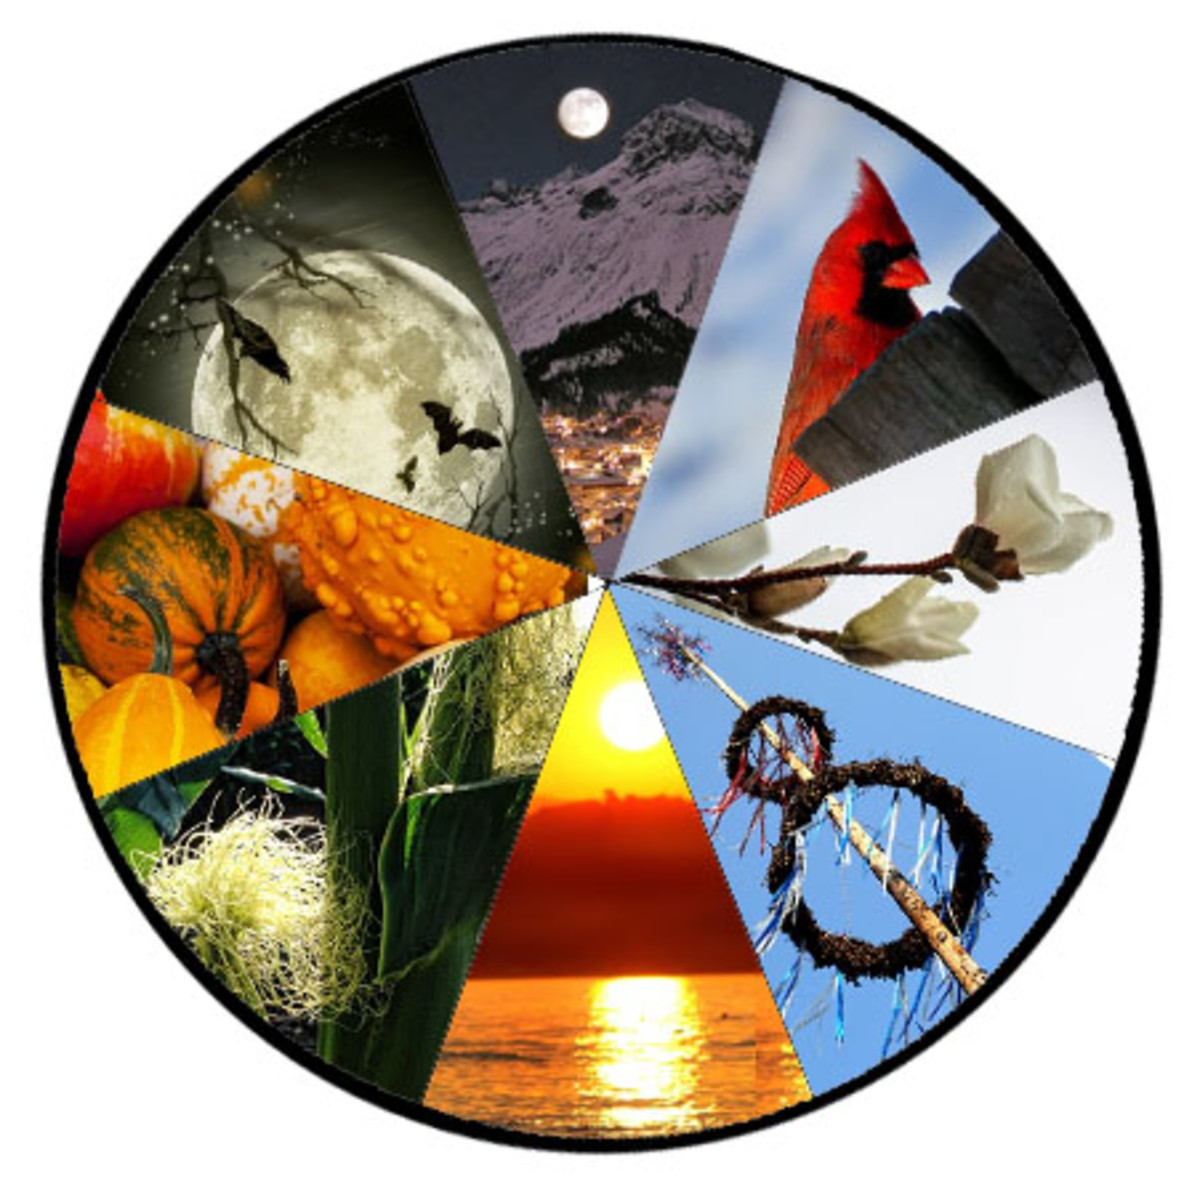 Wicca for Beginners: Wheel of the Year Resource Guide